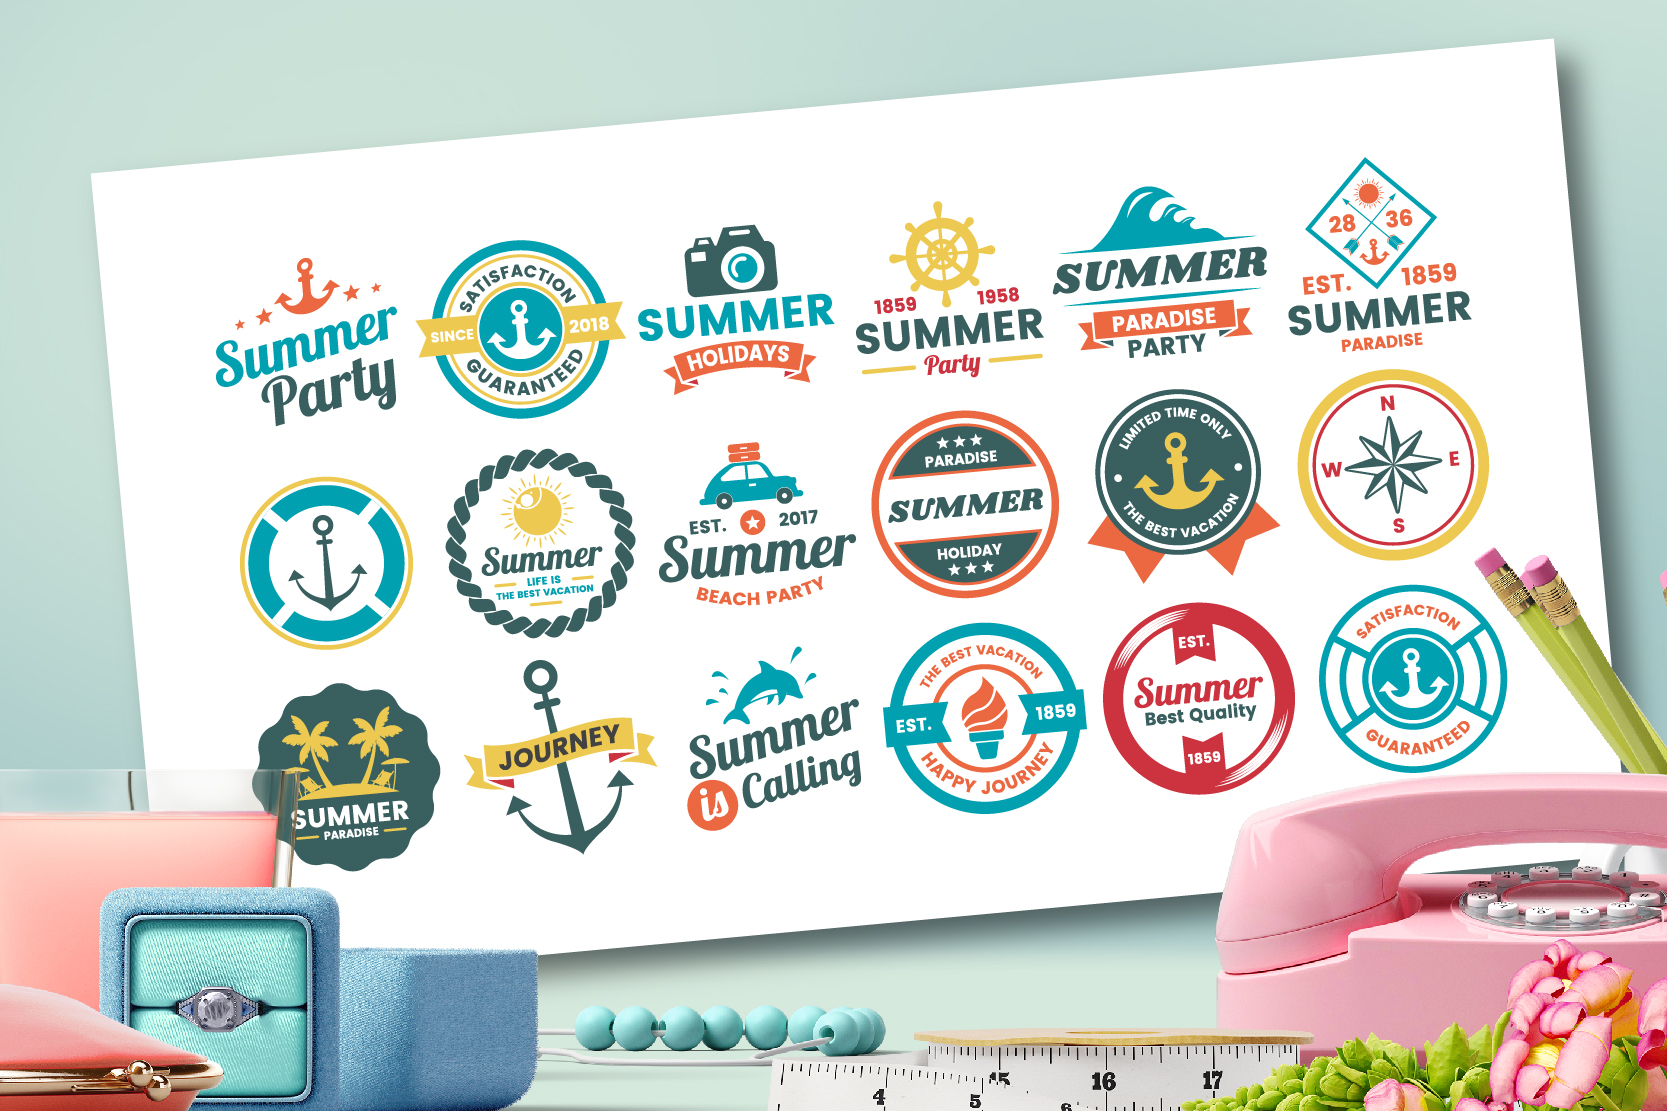 63 SUMMER VINTAGE BADGE & RIBBON example image 5